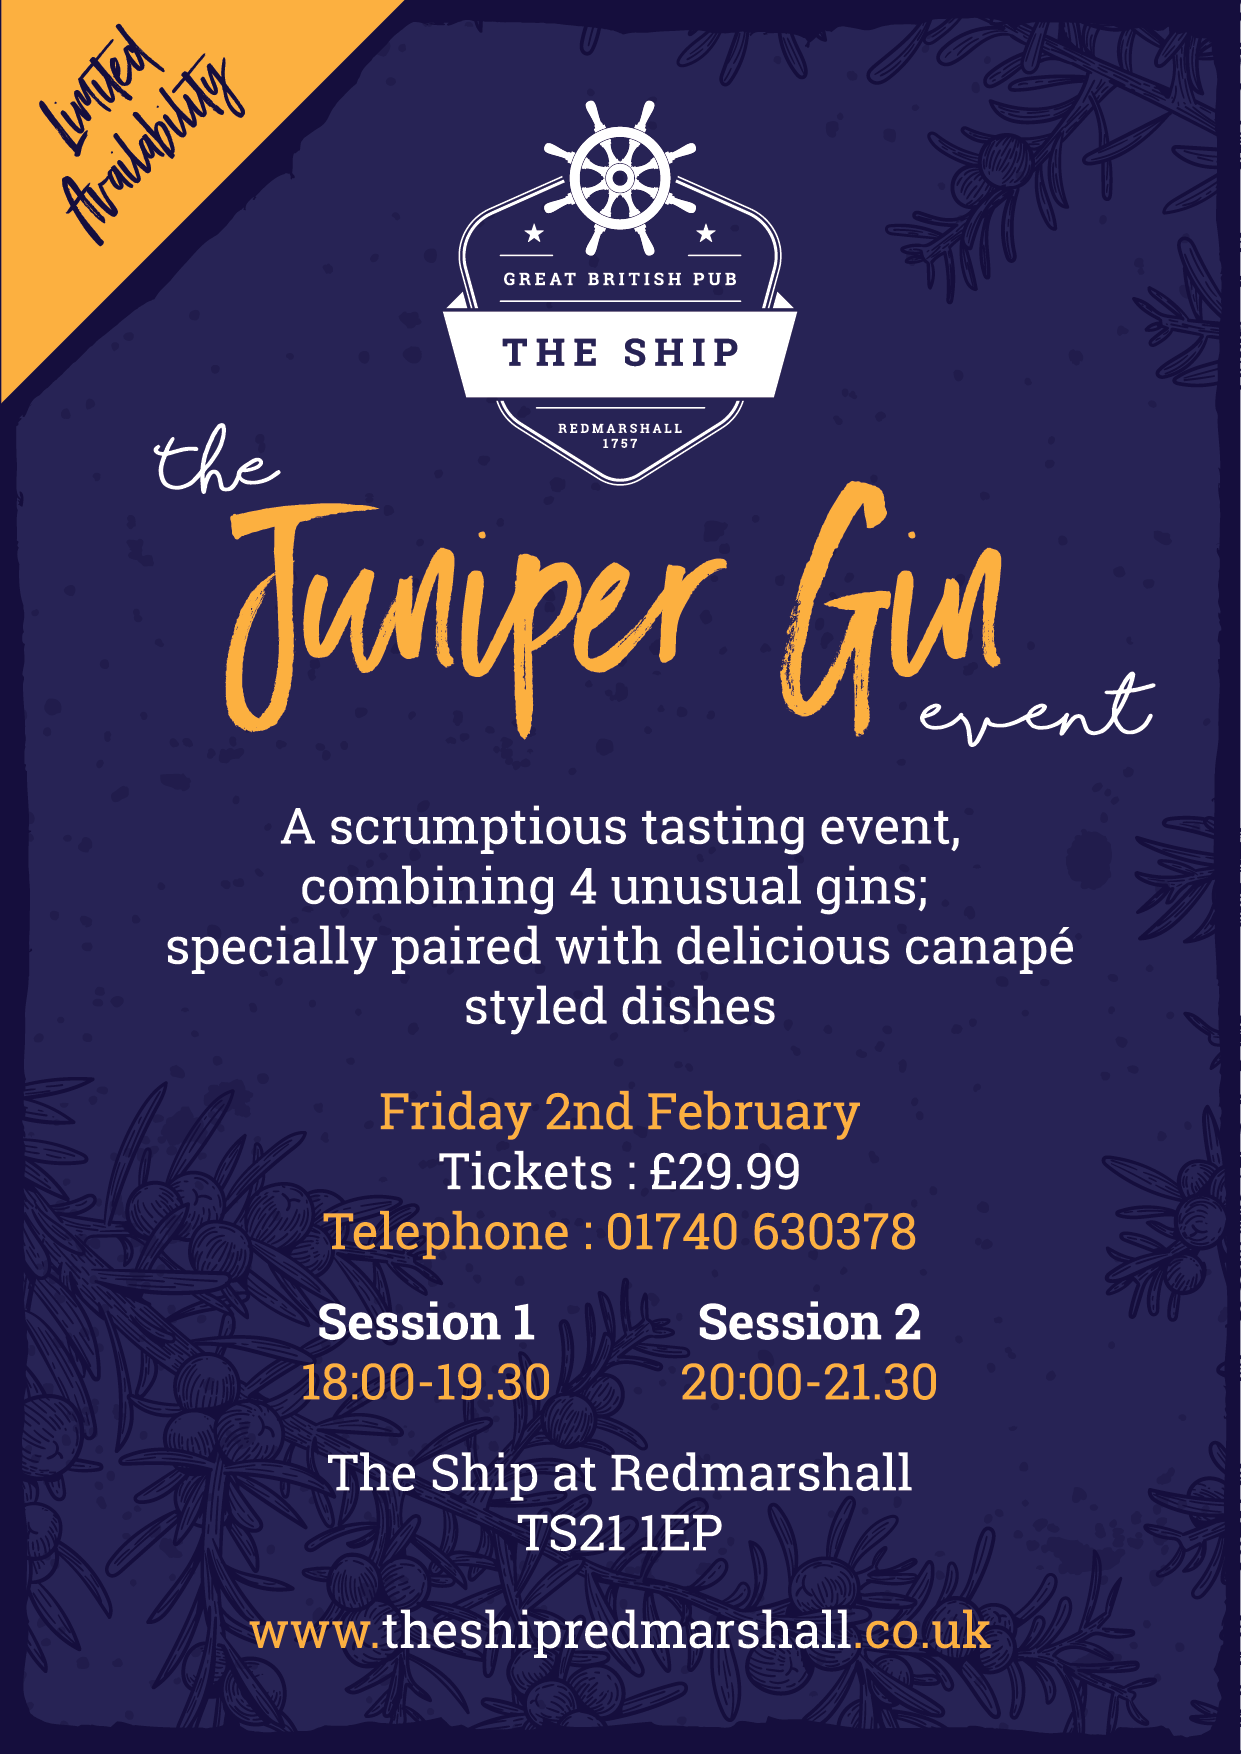 Juniper Gin Event @ The SHip Redmarshall, February 2nd 2018